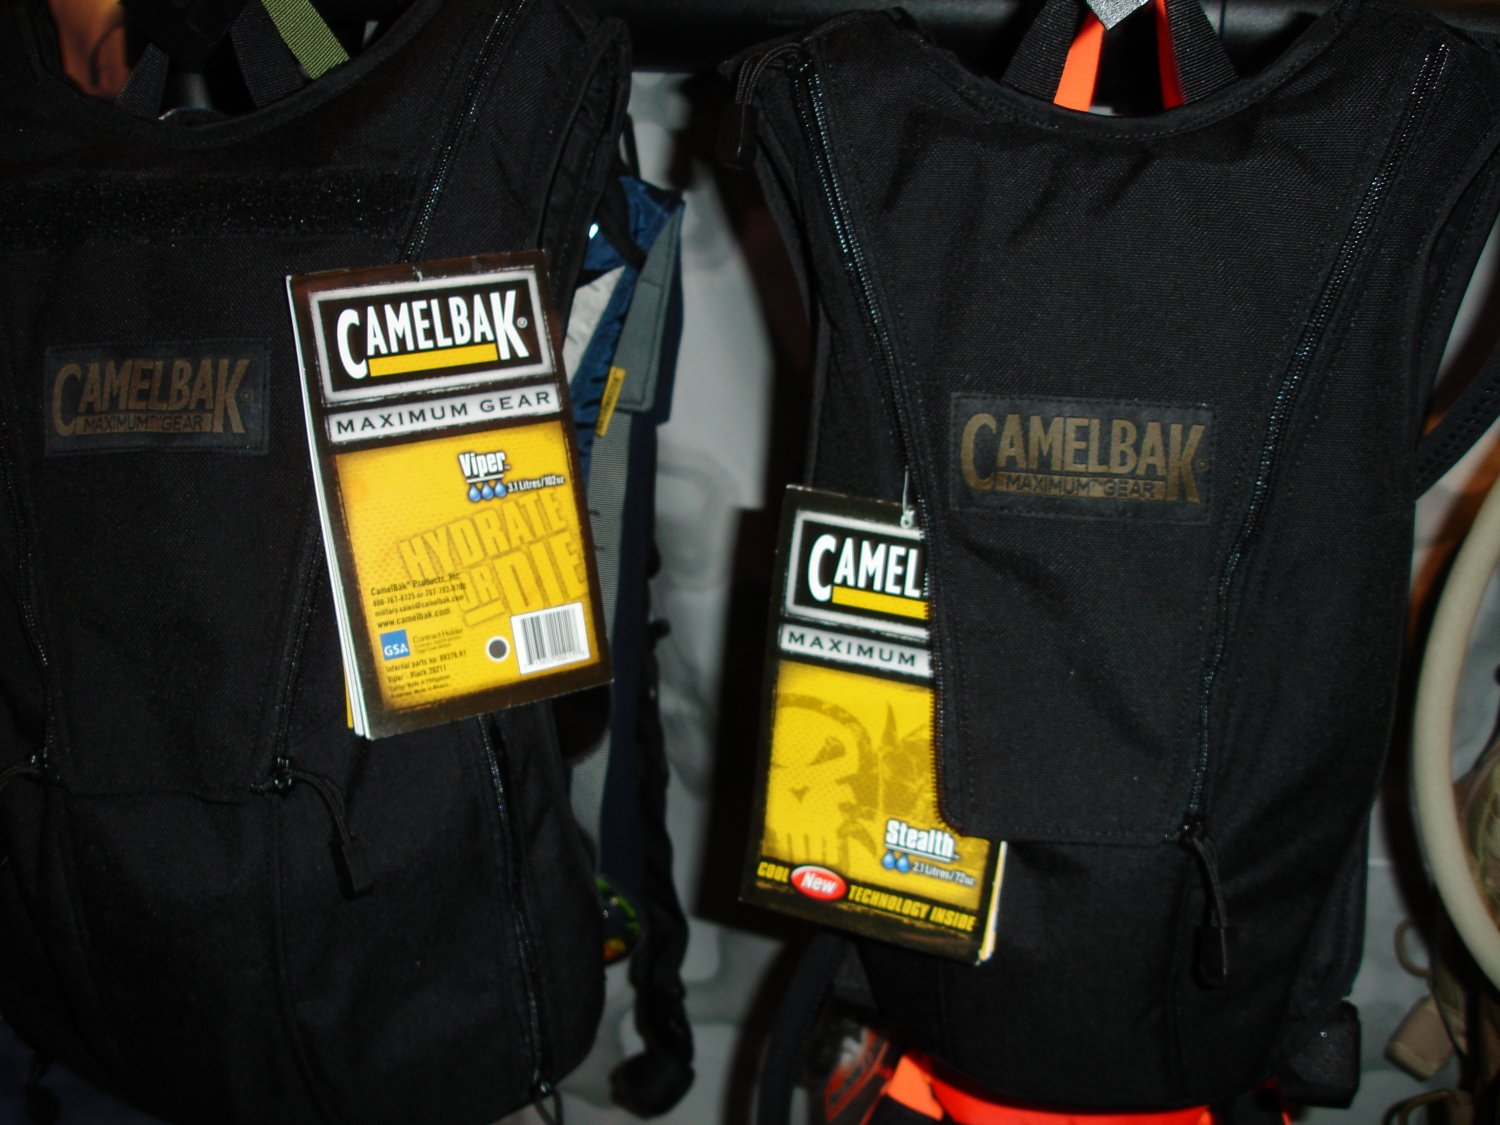 Camelbak%20Stealth%20and%20Viper 1 <!  :en  >CamelBak Gears Up for U.S. Military SPECOPS and Chemical/Biological Warfare<!  :  >